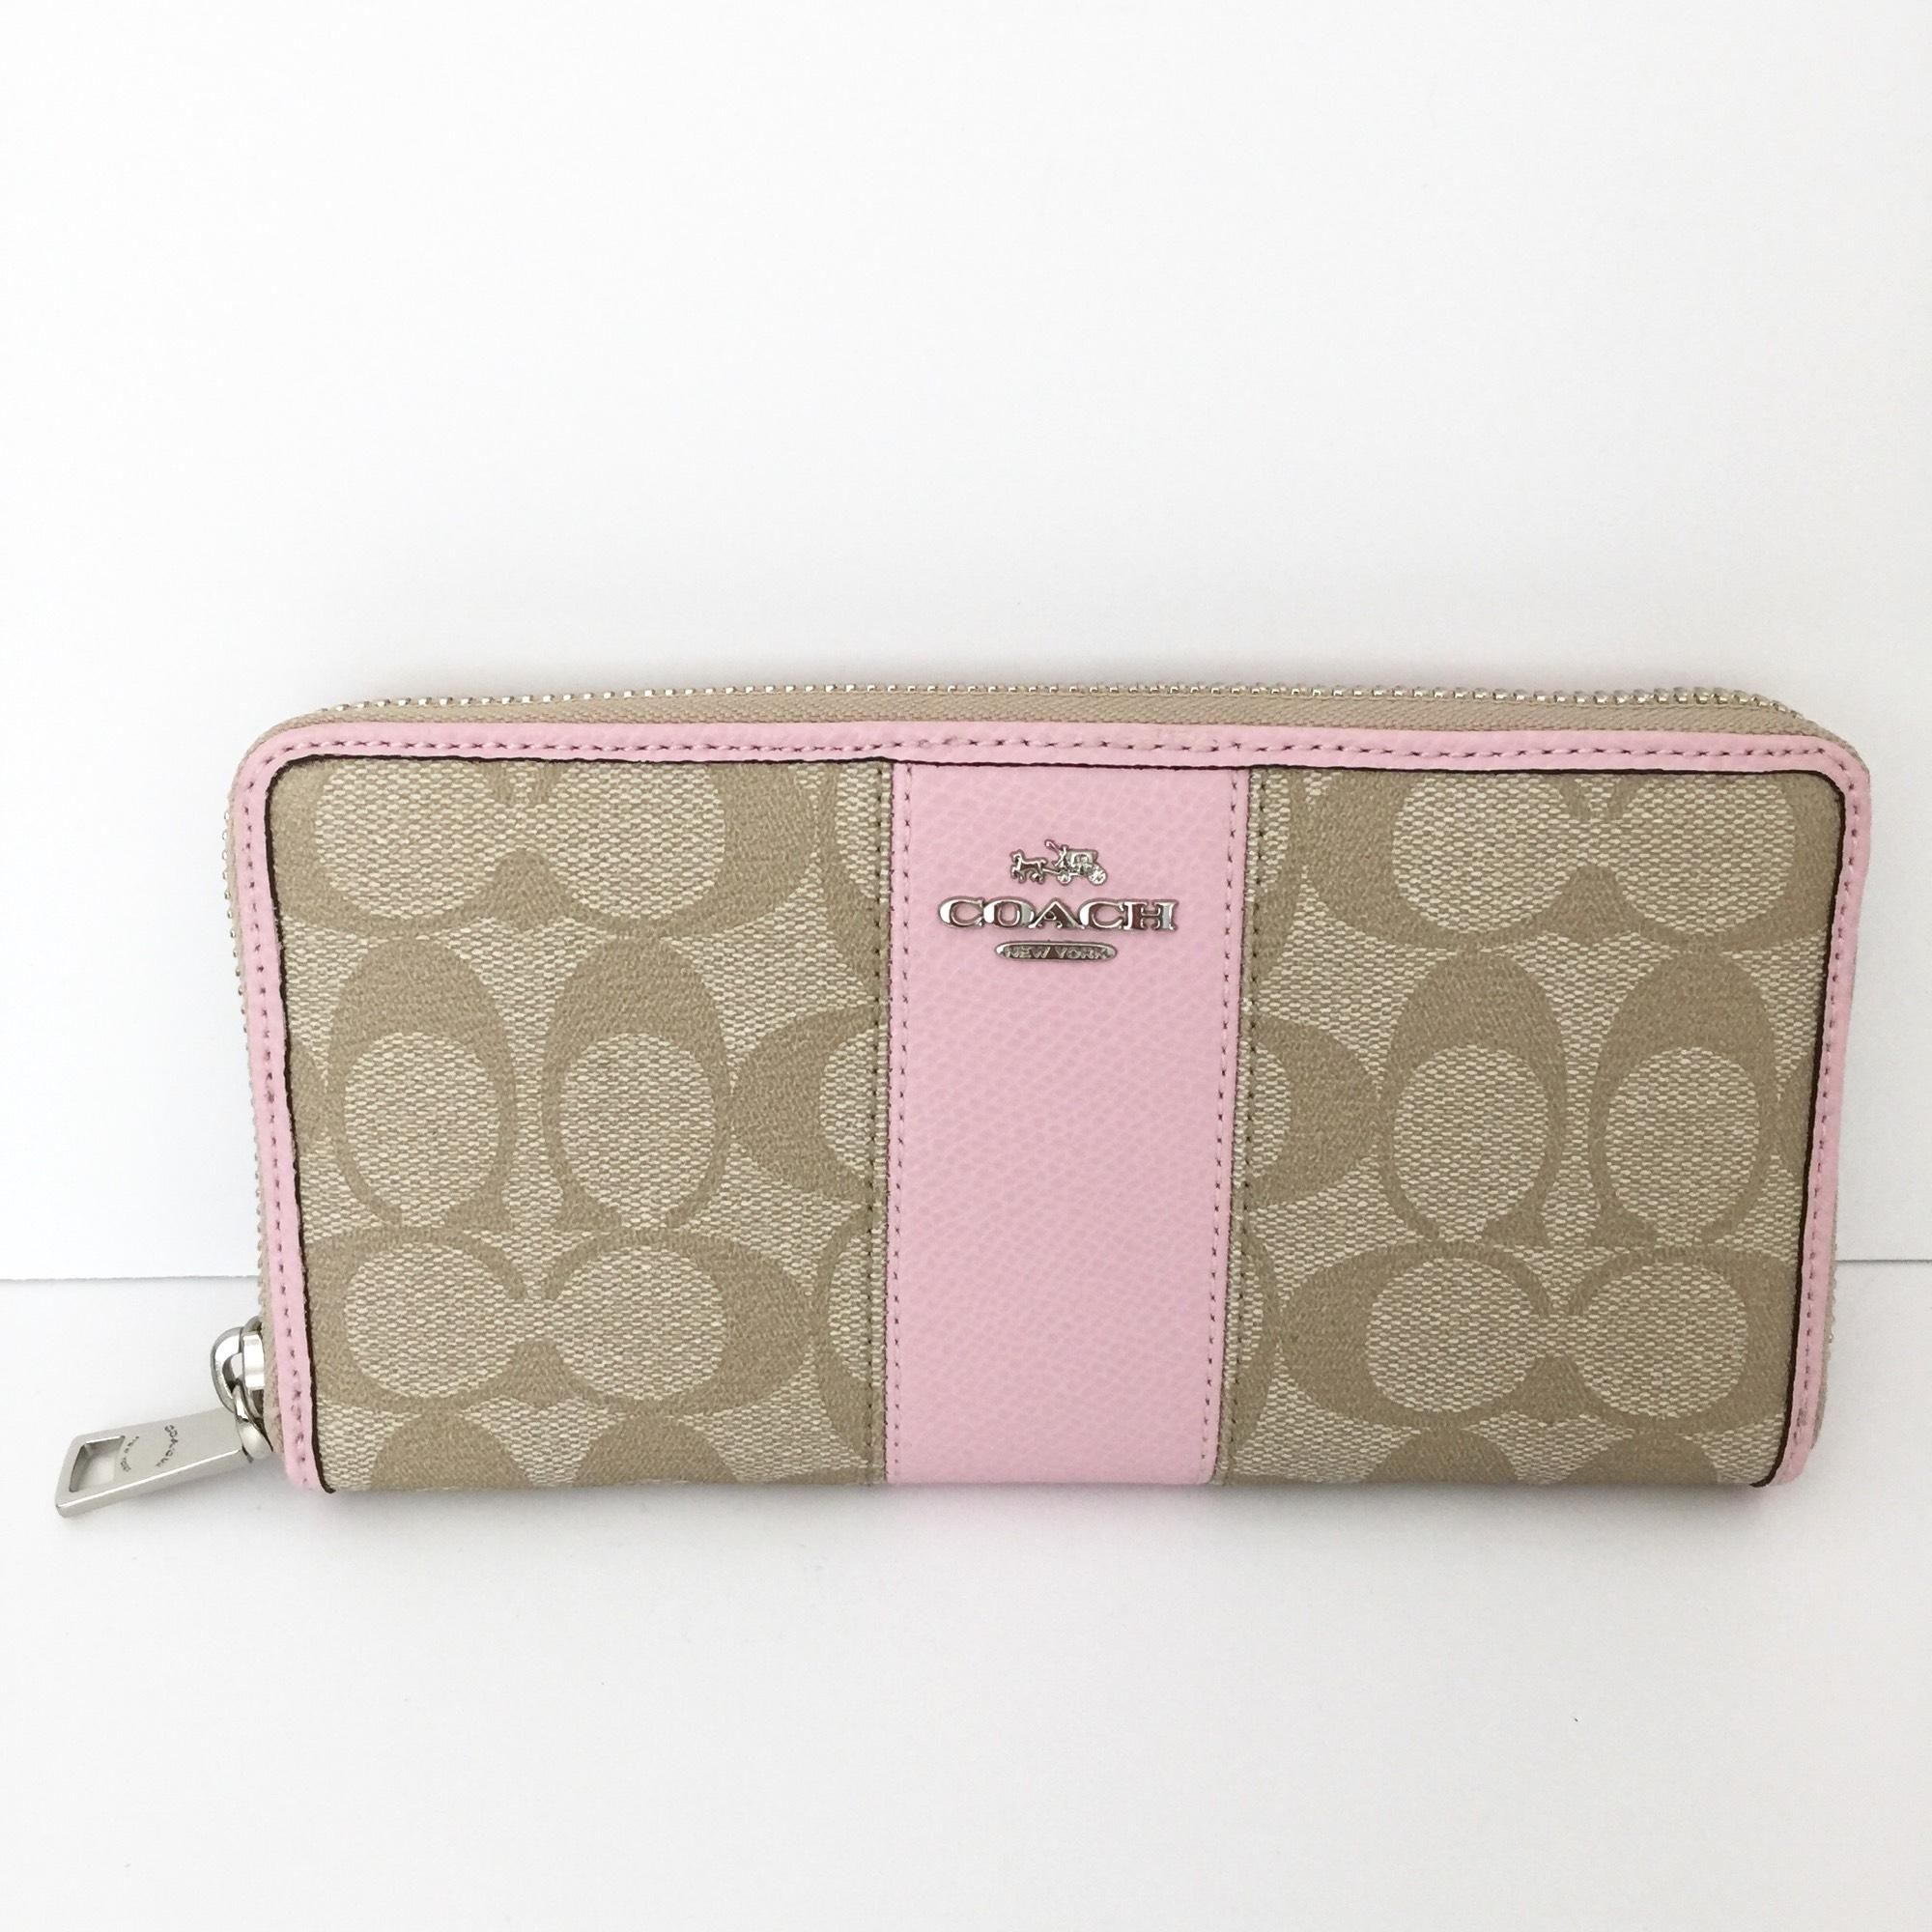 Coach Signature PVC Leather Acc Zip Around Wallet F52859